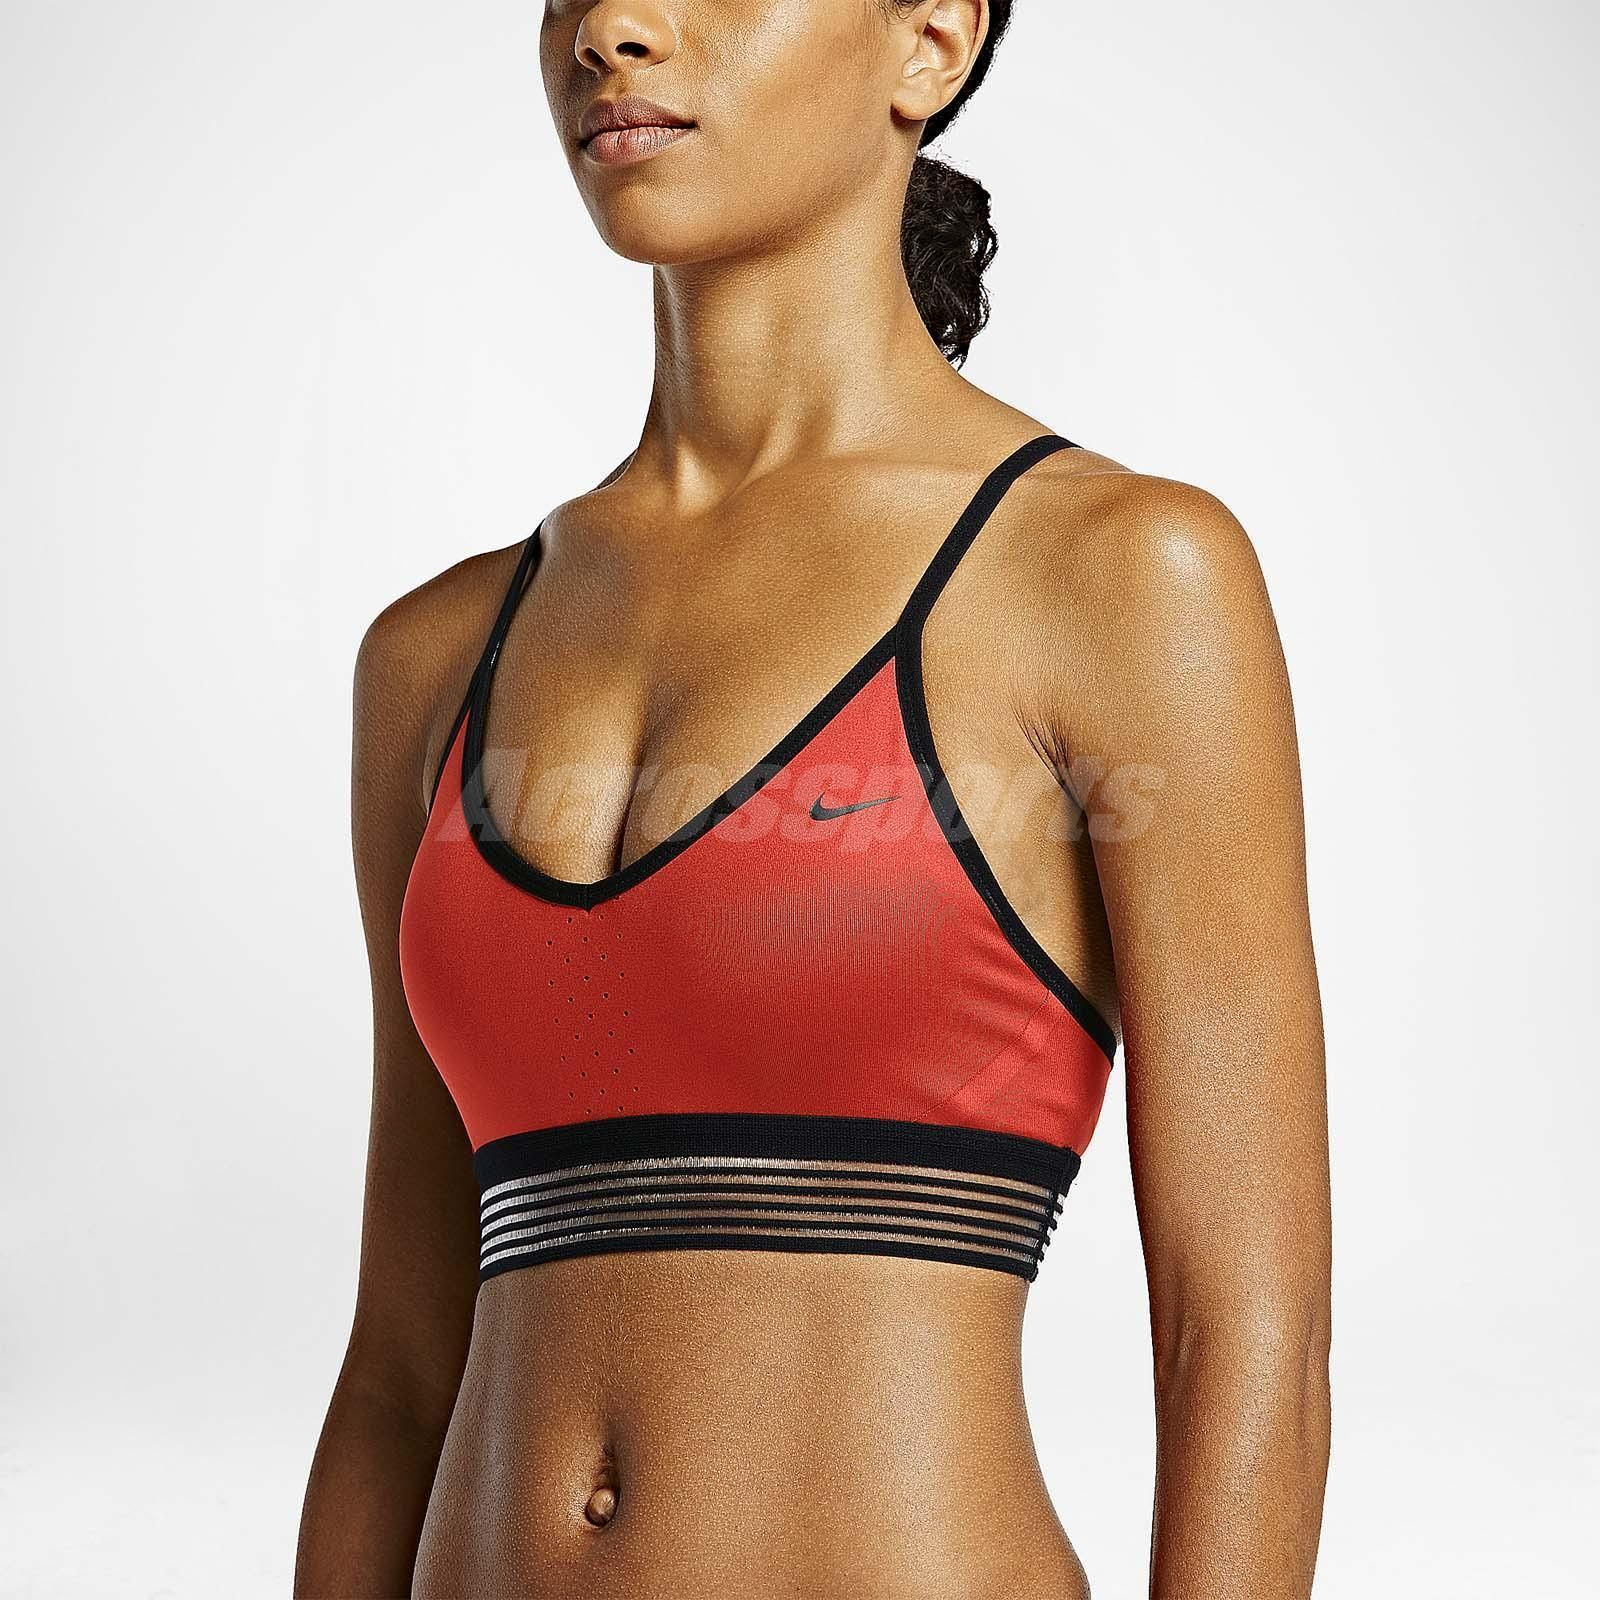 6063c39030b86 Nike Pro Women Indy Cool Light Support Red Yoga Fitness Workout Bra  805190-696